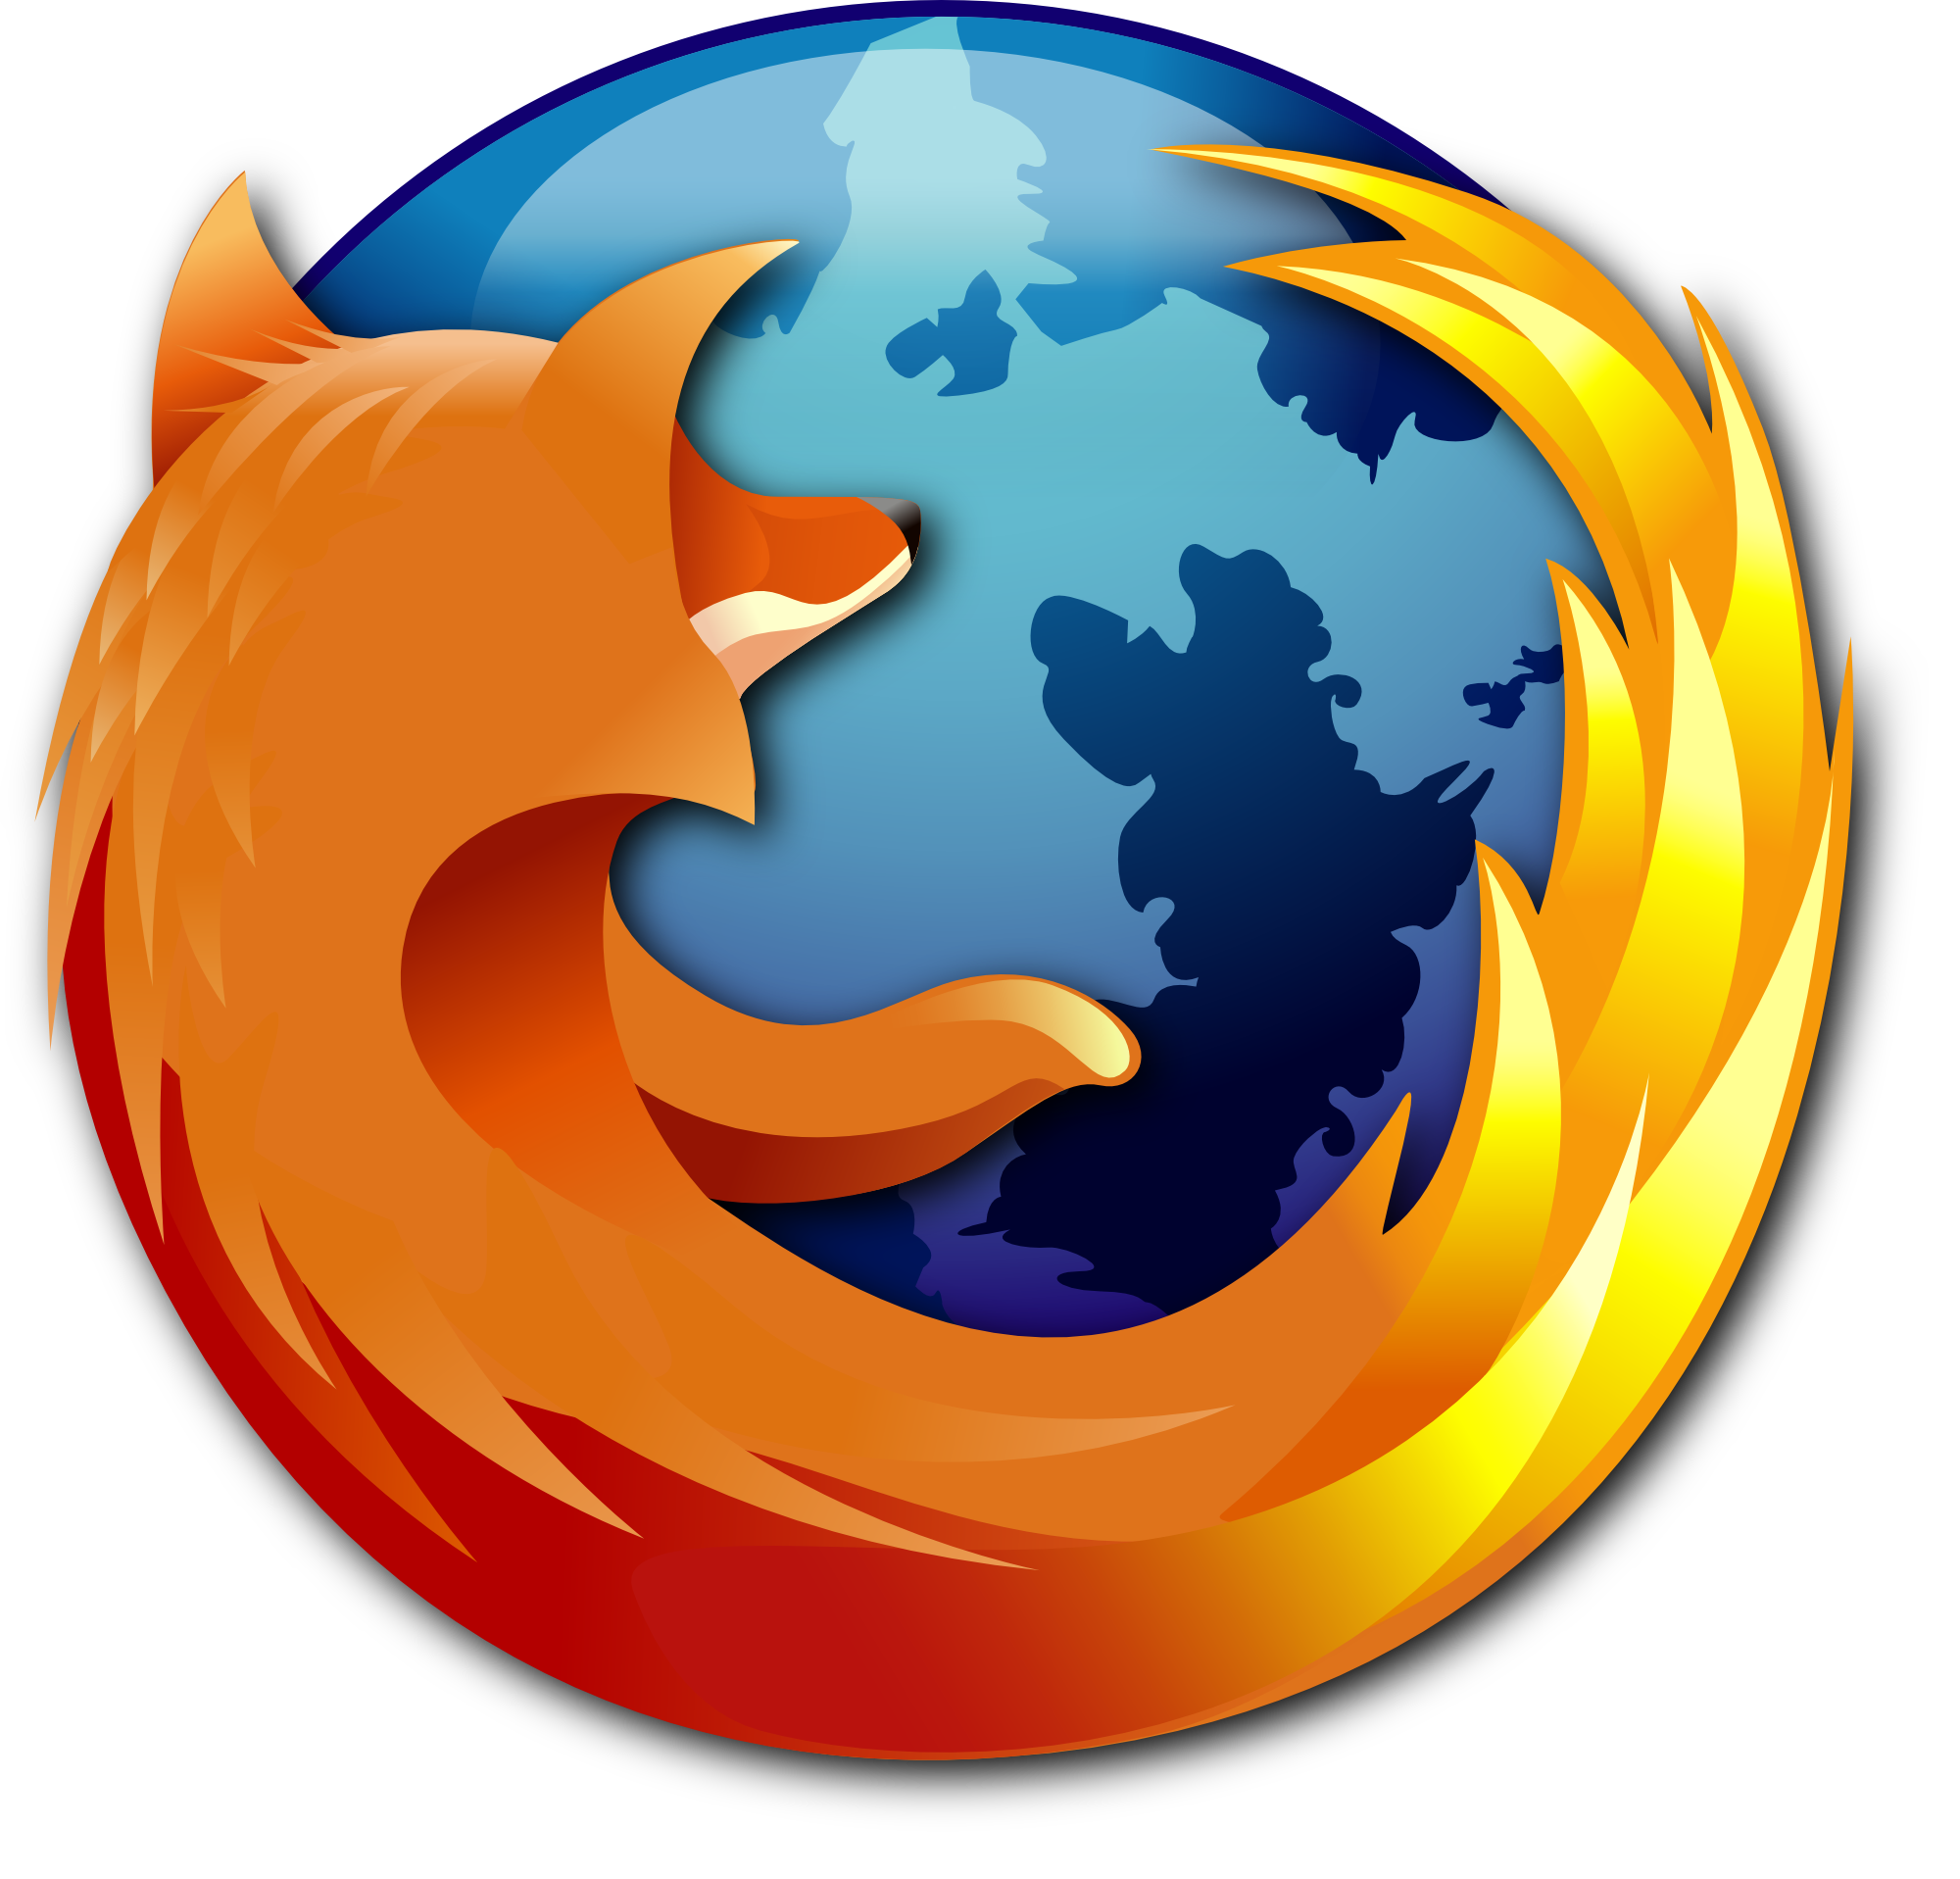 Firefox drawing sad. File logo png videolan